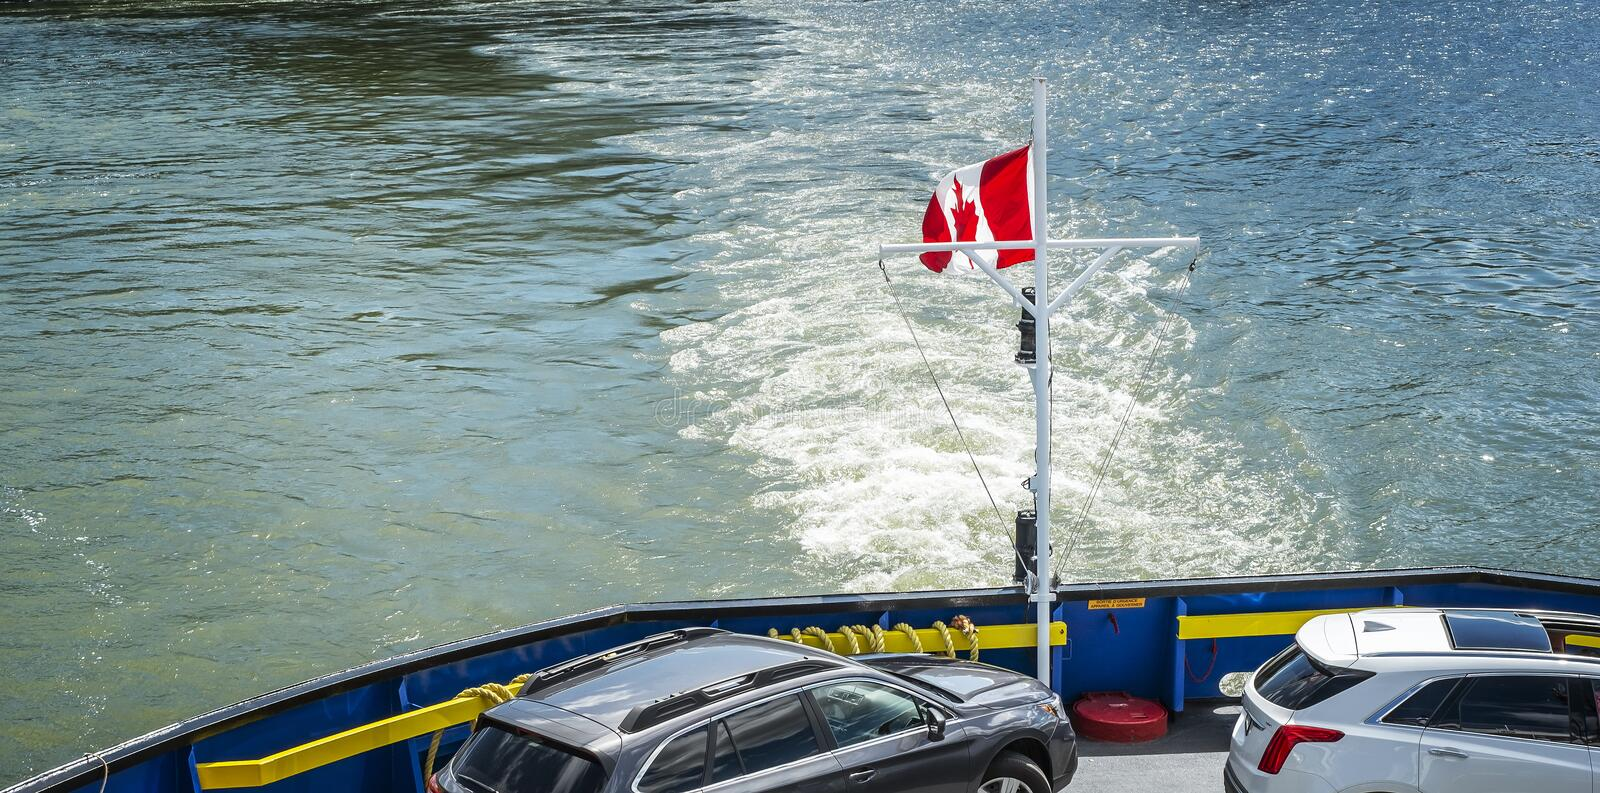 Canada flag on a ferry boat. Canada flag on the back of Quebec Levis ferry boat in the Saint Lawrence seaway, Quebec, Canada royalty free stock photography